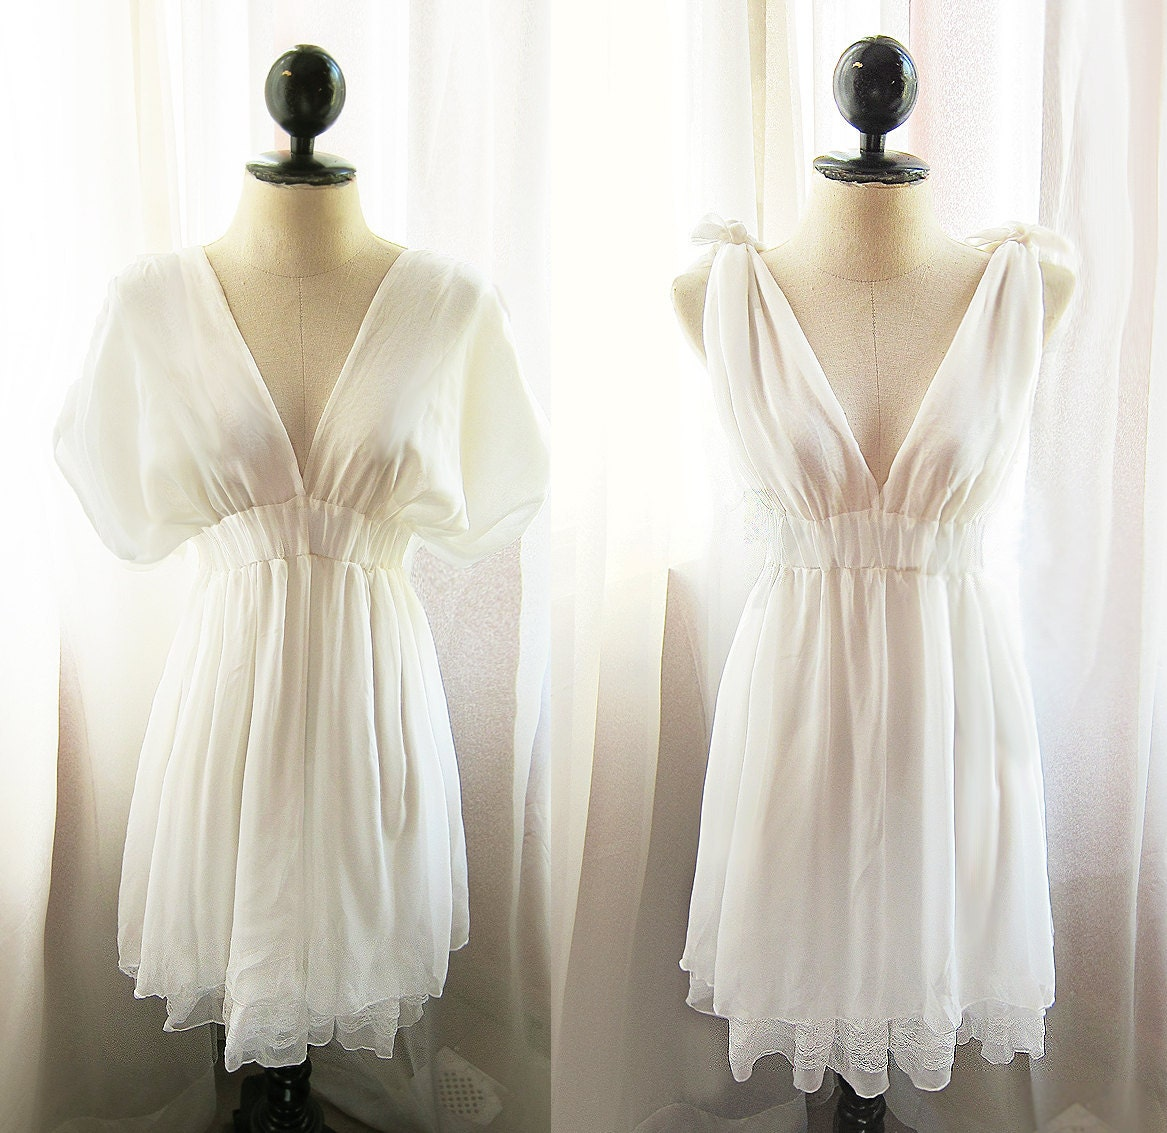 Dreamy White Kimono Grecian Dress Romantic Pale Chantilly Pure